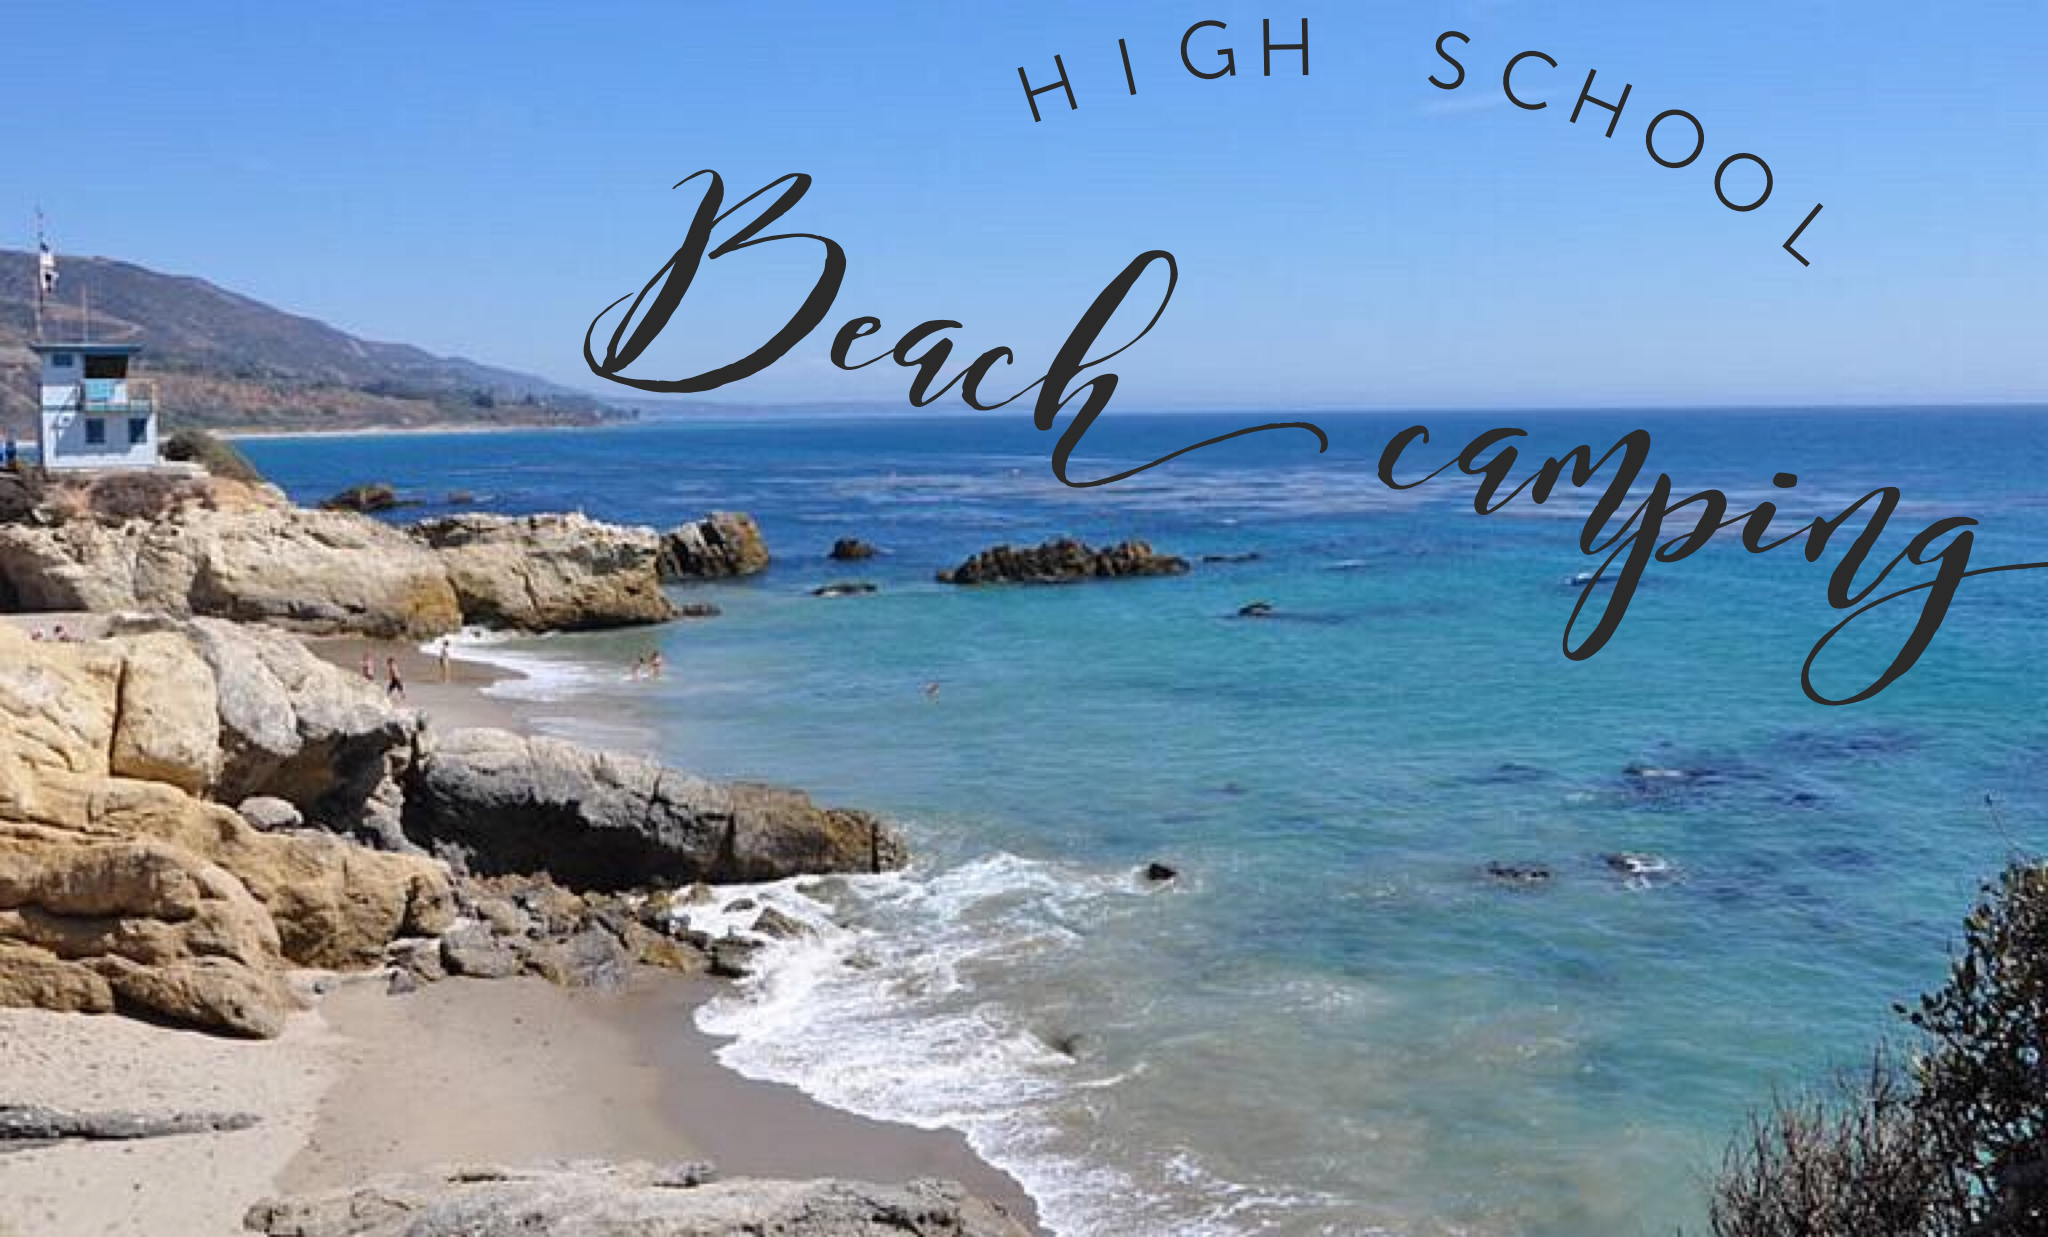 High School Summer Beach  Camping Trip